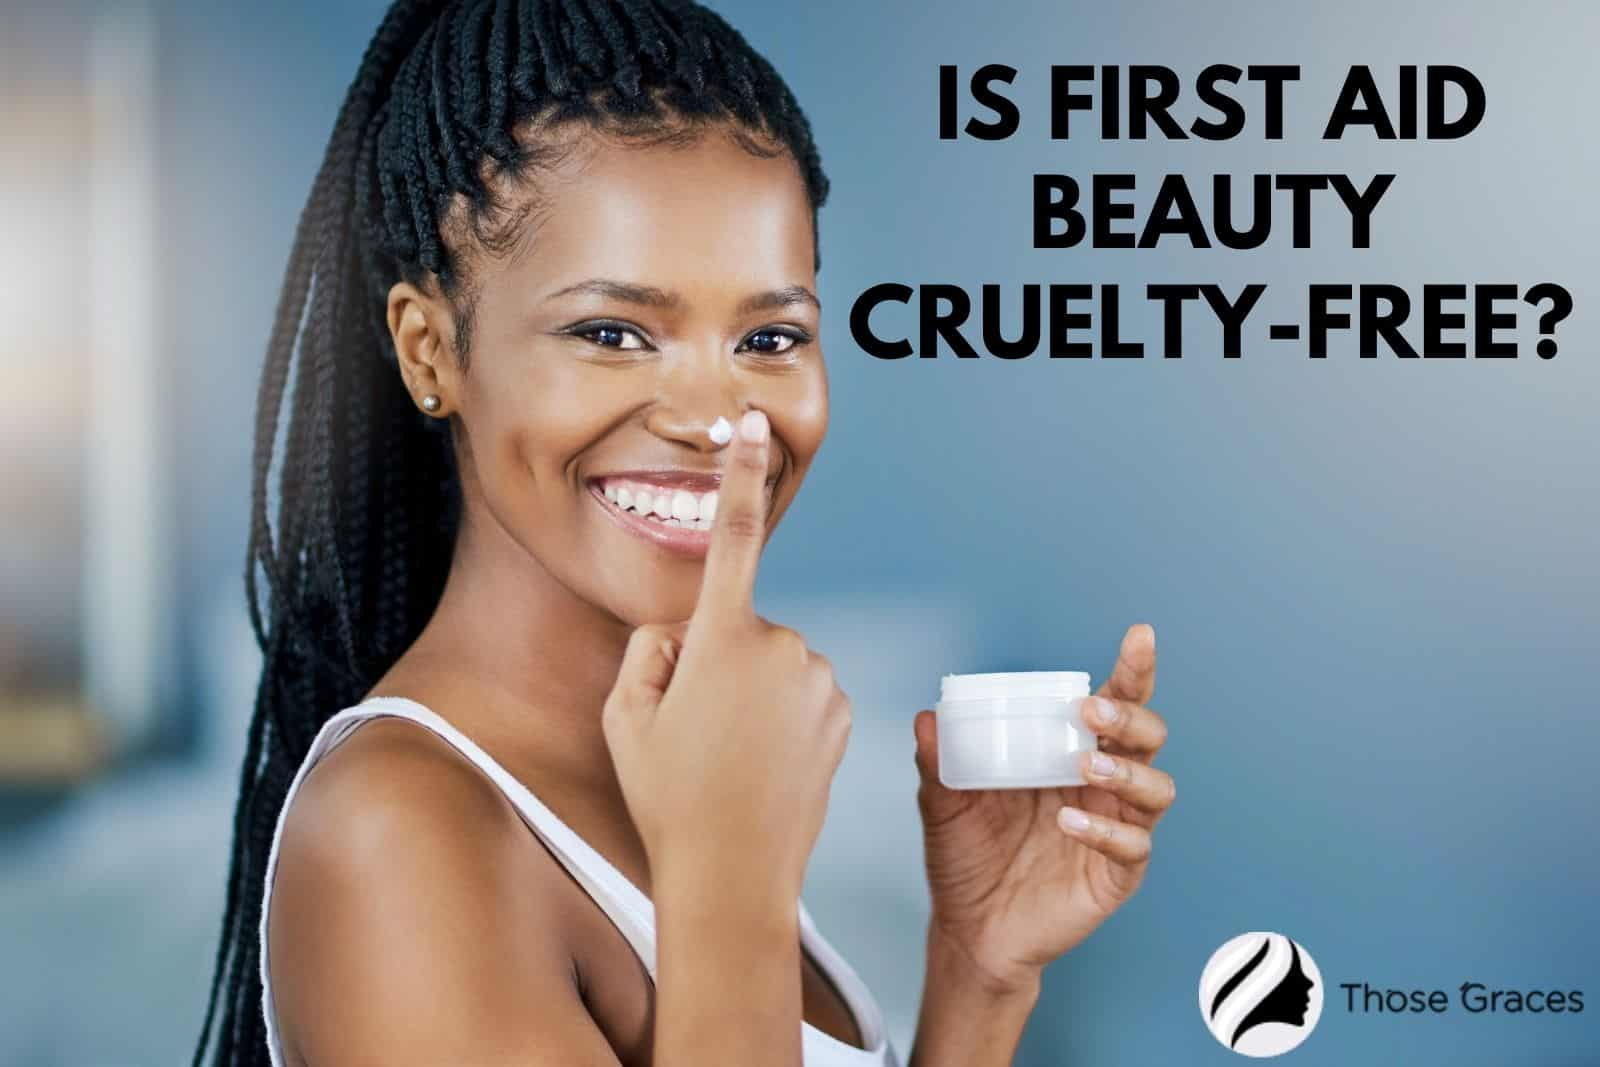 a beautiful lady holding a cream with the question